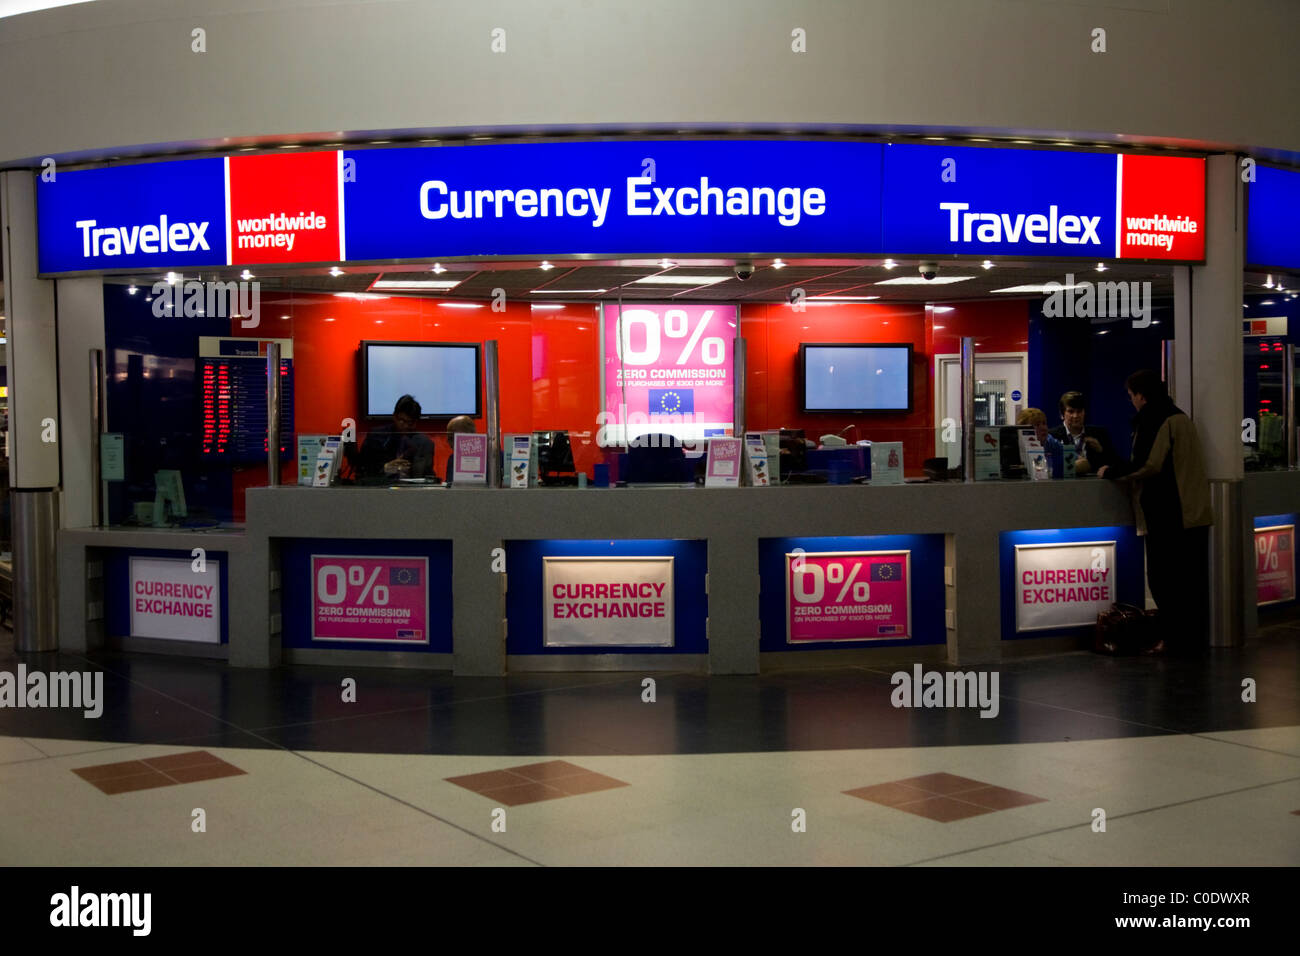 Bureau de change office operated by travelex at gatwick airport stock photo royalty free image - Gatwick airport bureau de change ...